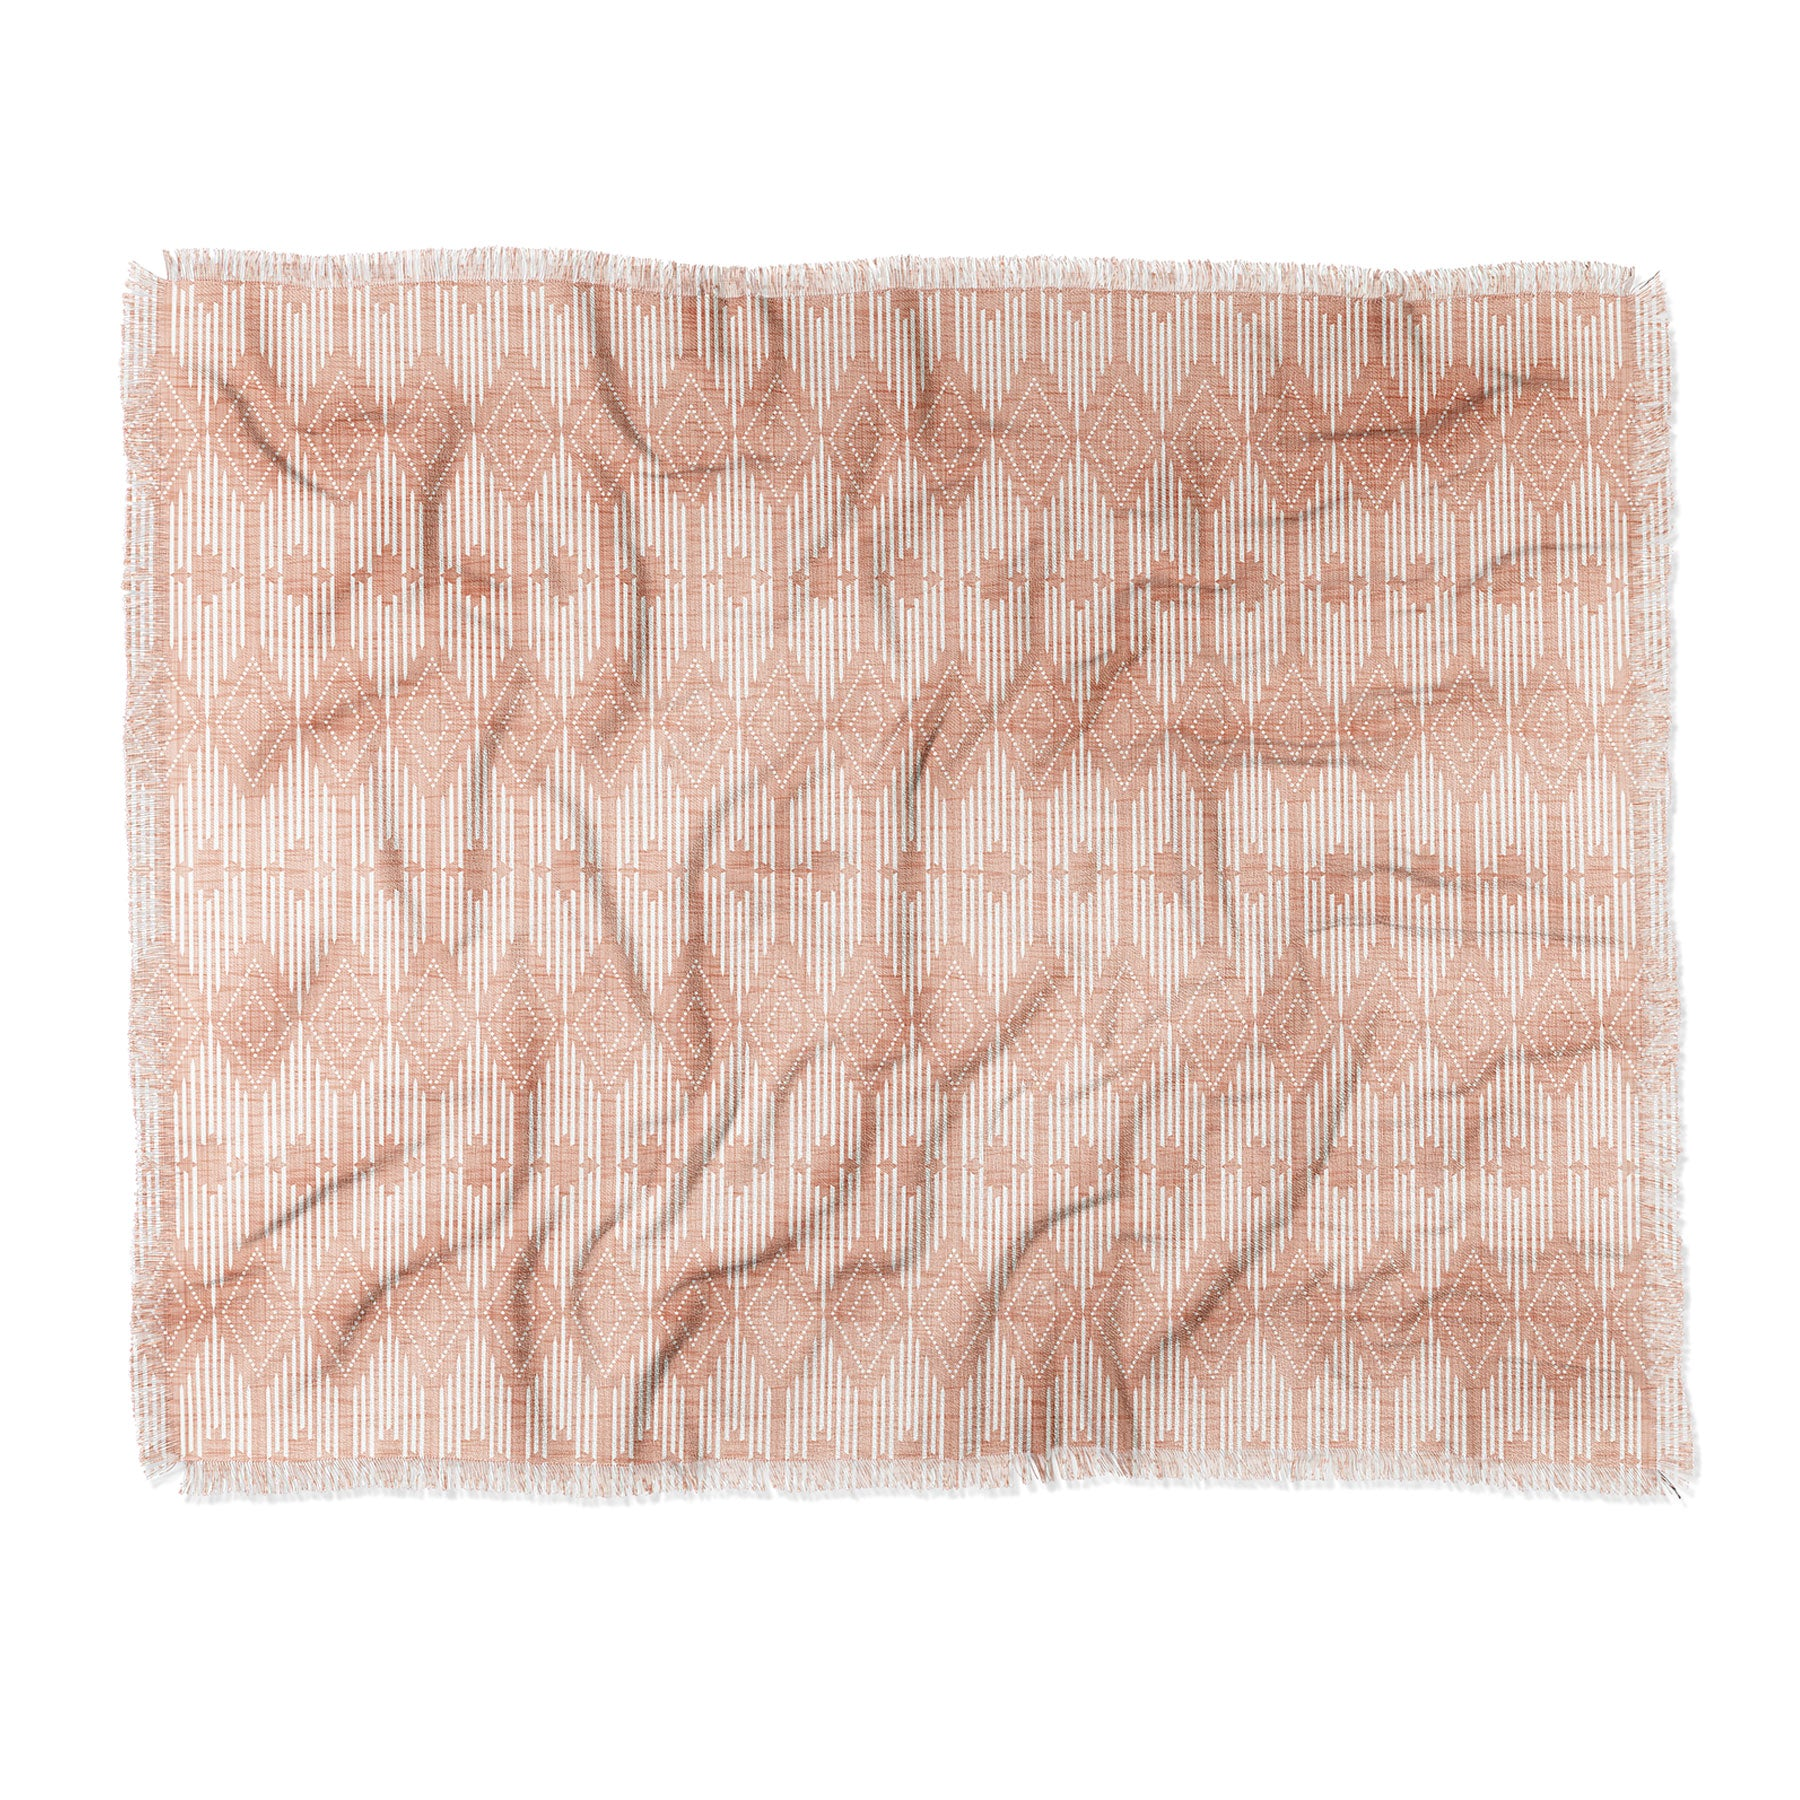 Heather Dutton West End Blush Throw Blanket